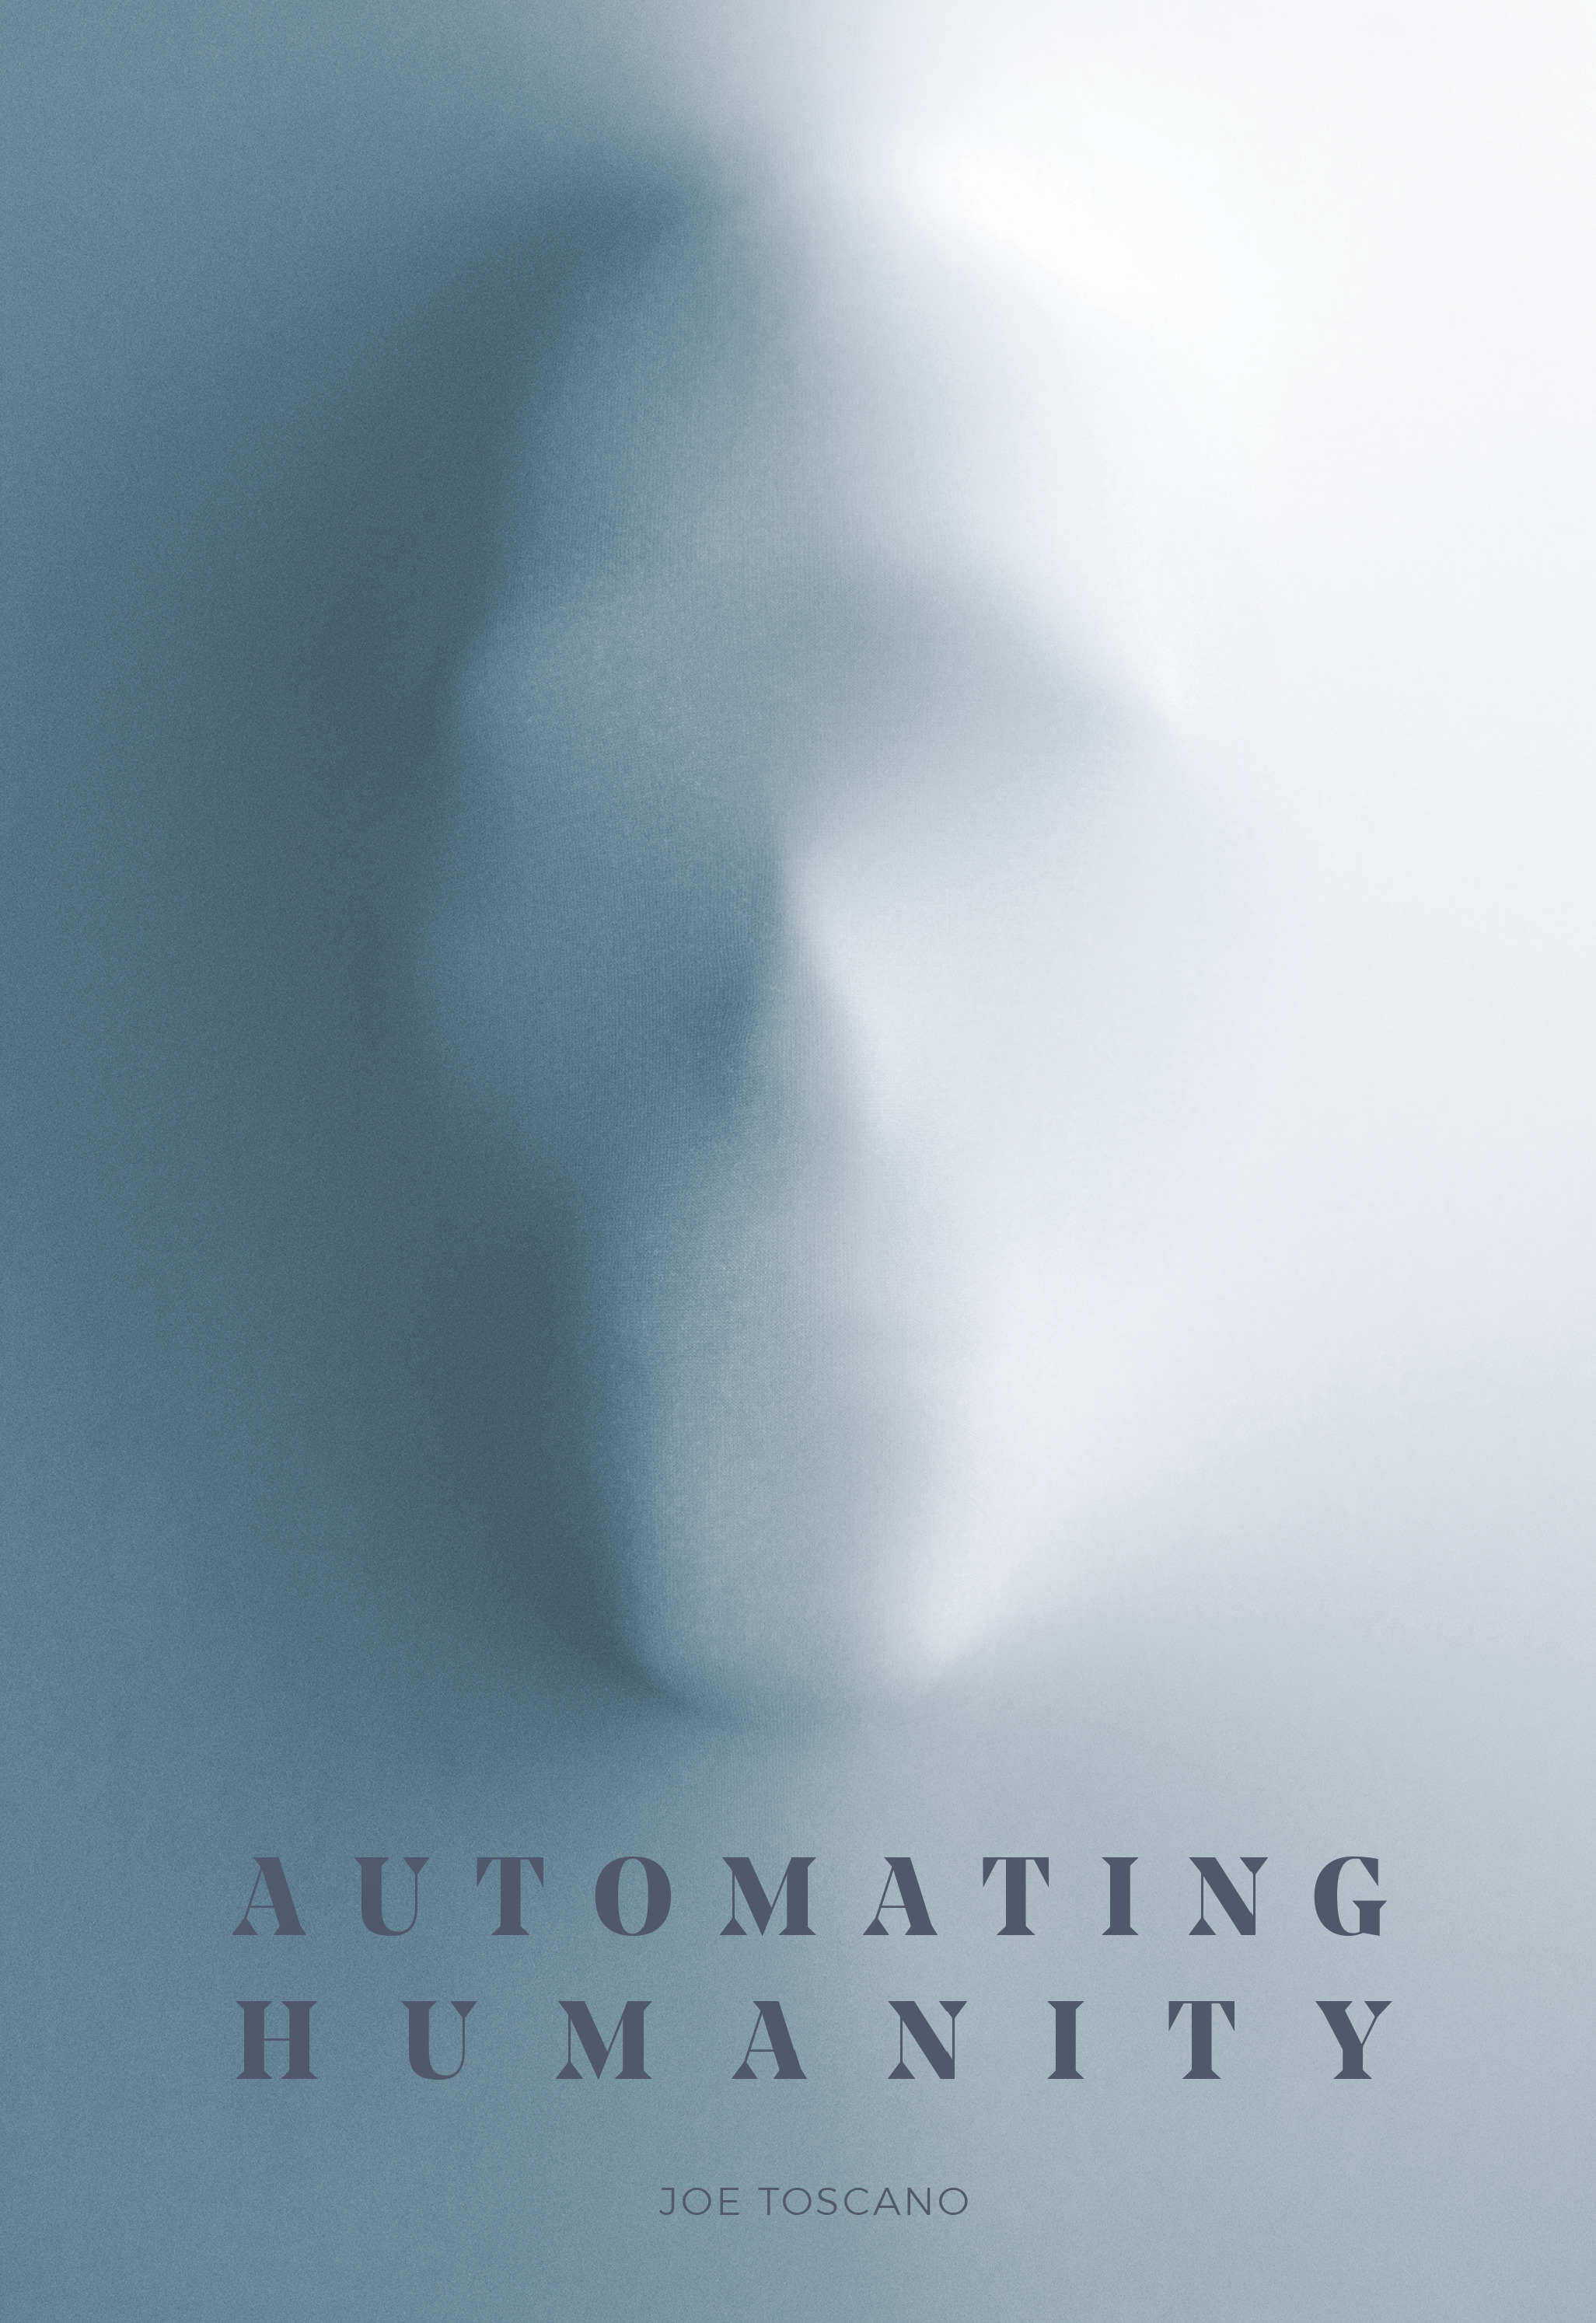 OFF SITE Book Discussion and Signing For Automating Humanity by Joe Toscano